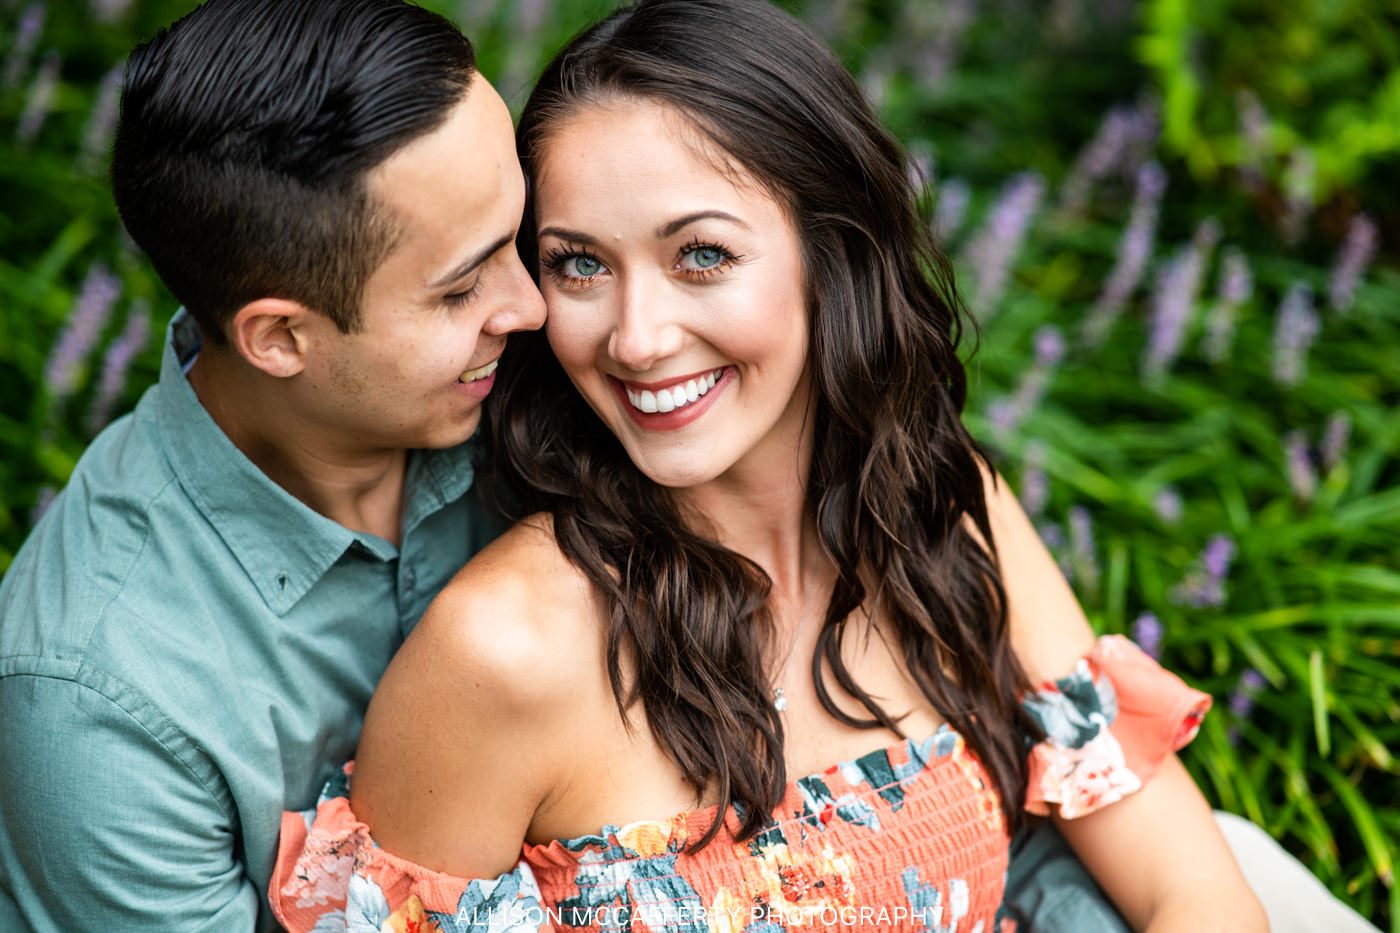 South Jersey Engagement Session Location Ideas